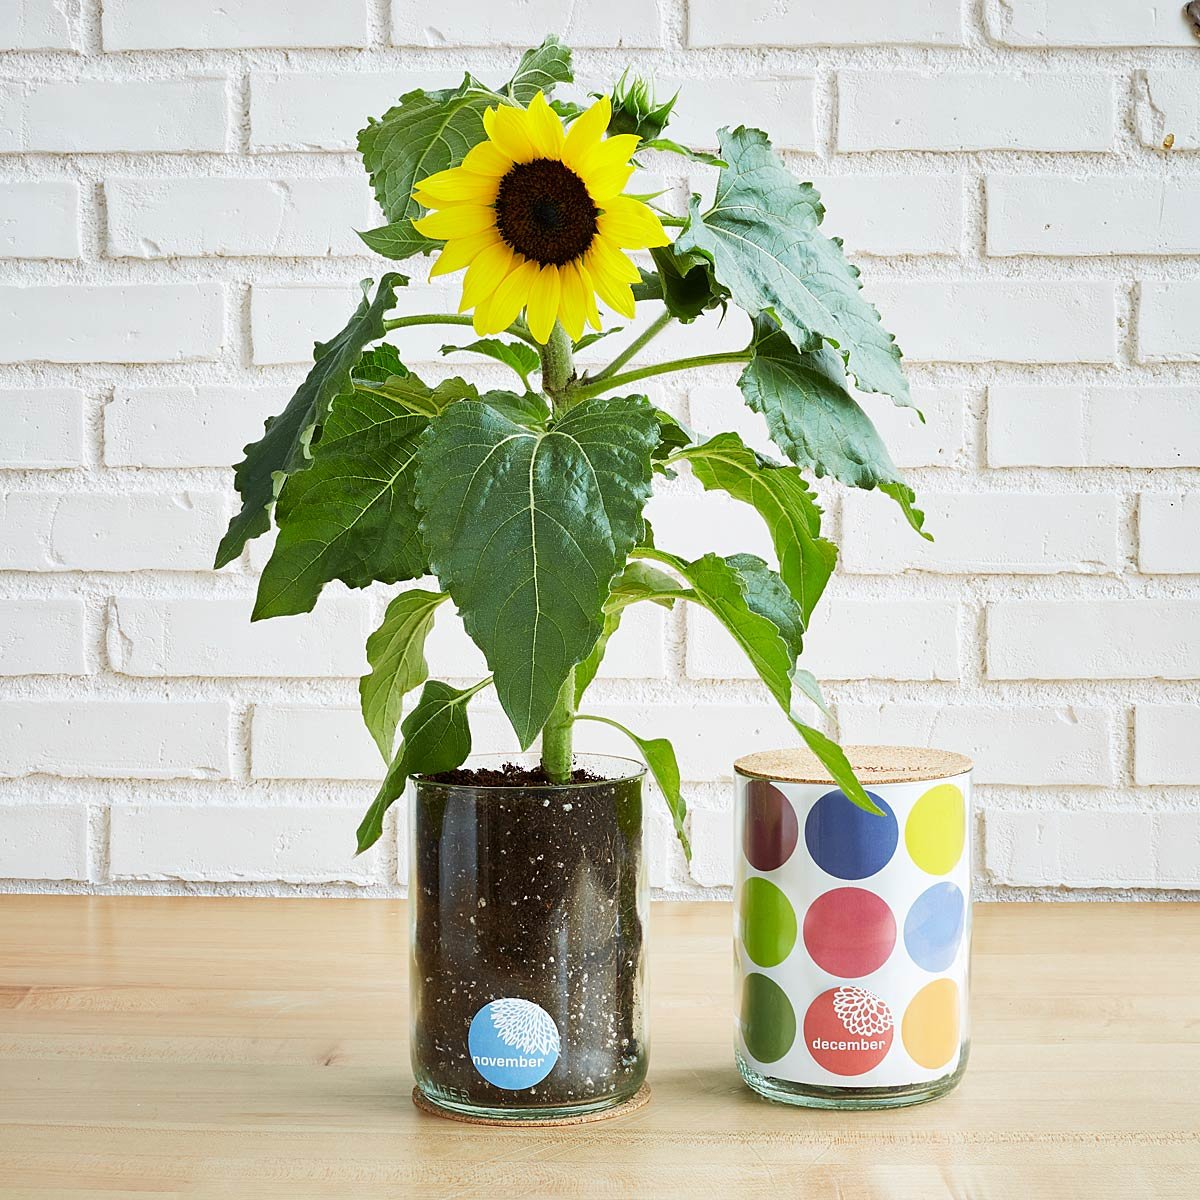 Birth Month Flower Grow Kit | UncommonGoods